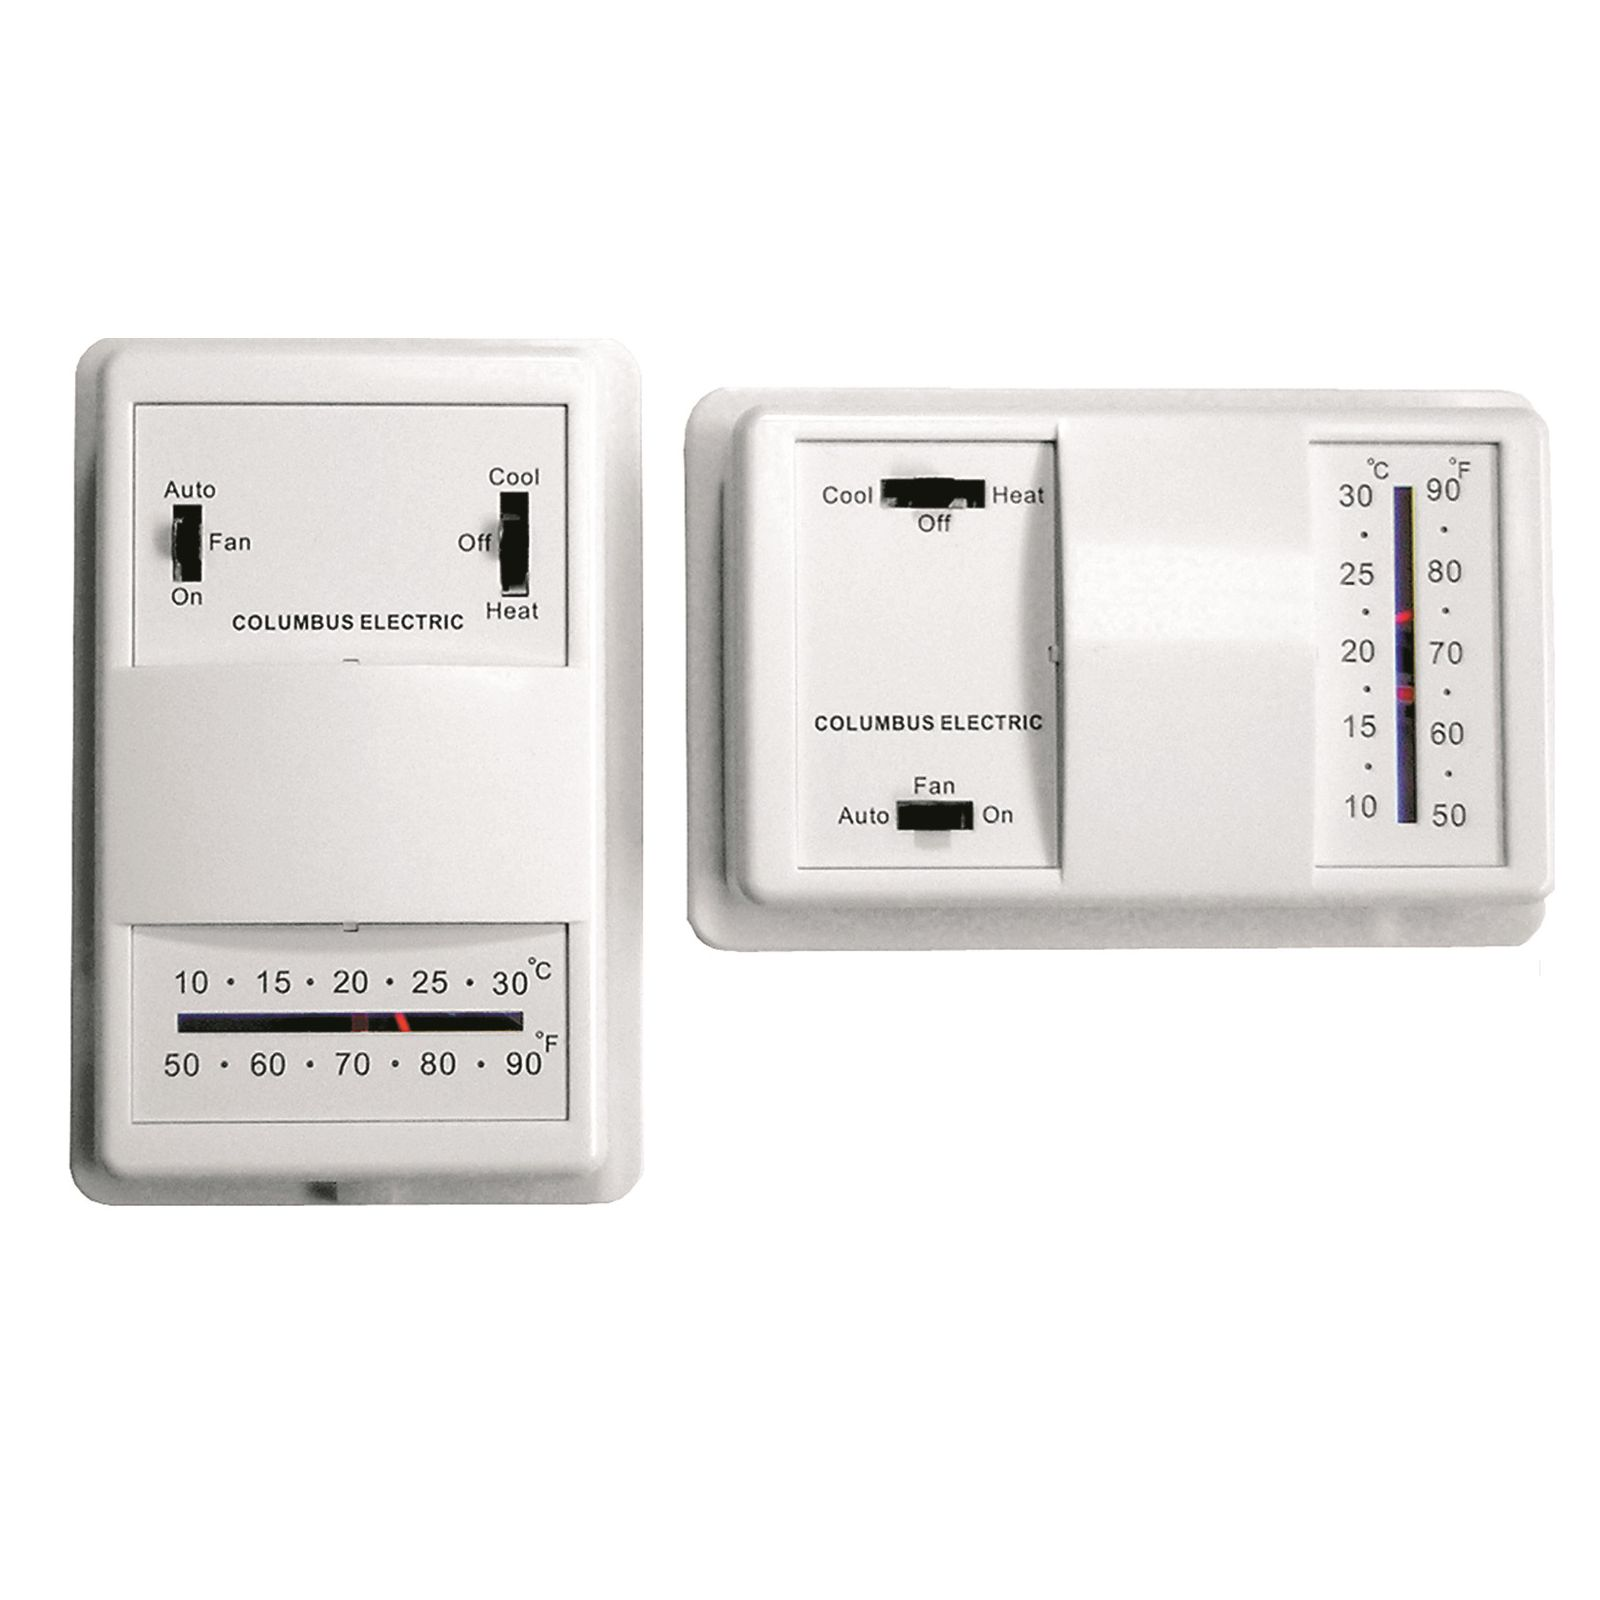 TPI UT1001 - Low Voltage Wall Mounted Thermostat, Heat Only For 24 VAC or Millivolt Systems, No Switches